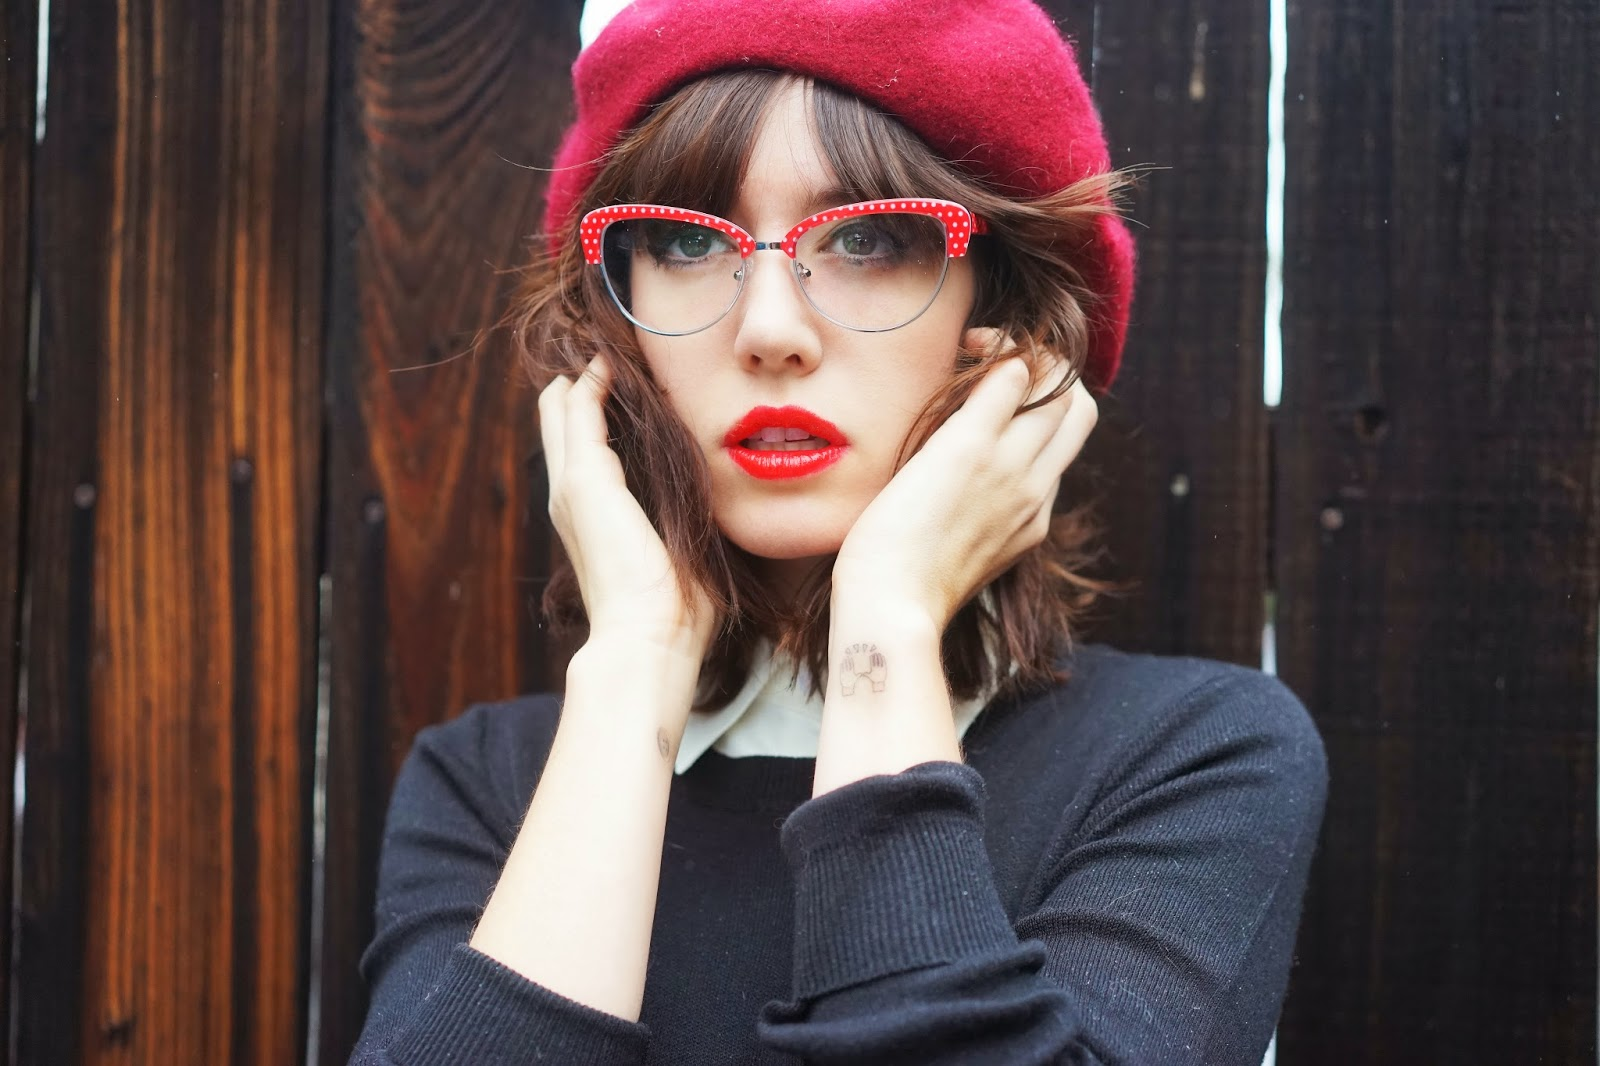 Eyewear in fun shapes and colors